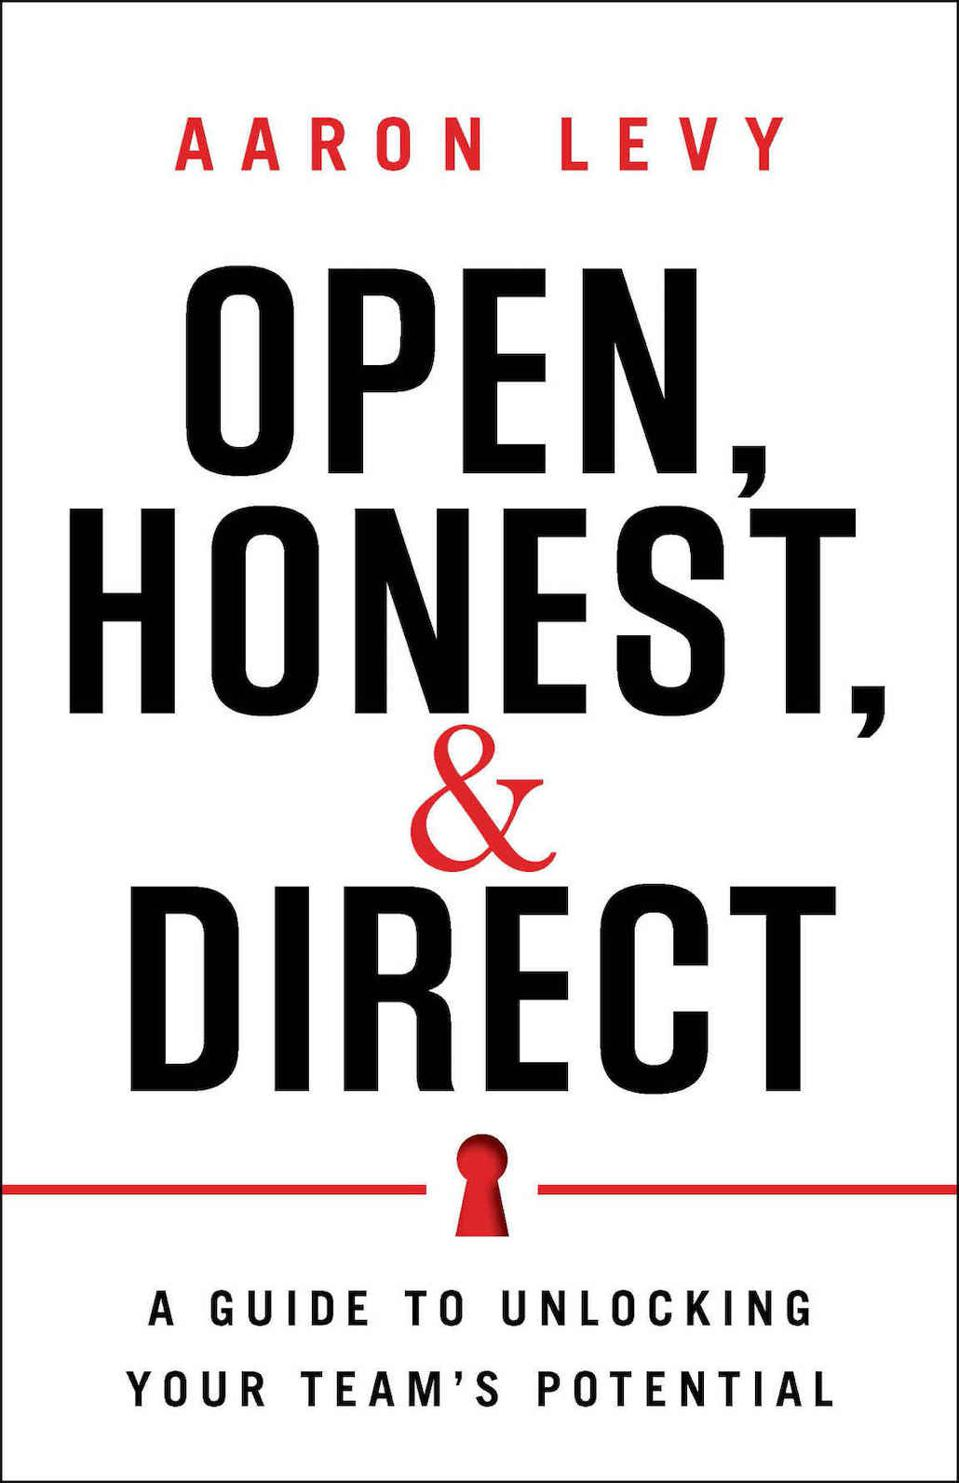 Open, Honest, and Direct: A Guide to Unlocking Your Team's Potential by Aaron Levy